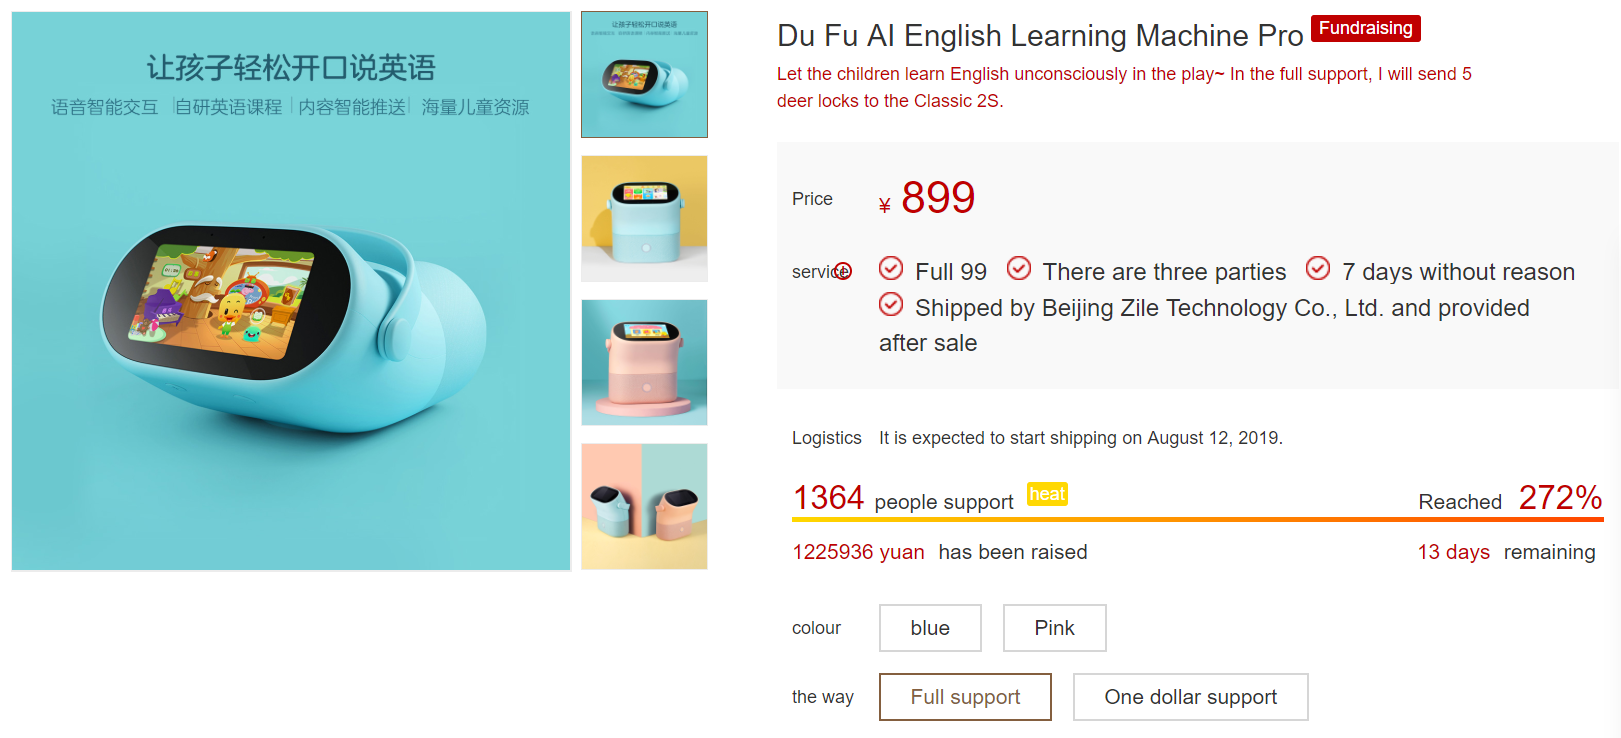 Xiaomi Du Fu AI English learning machine Pro